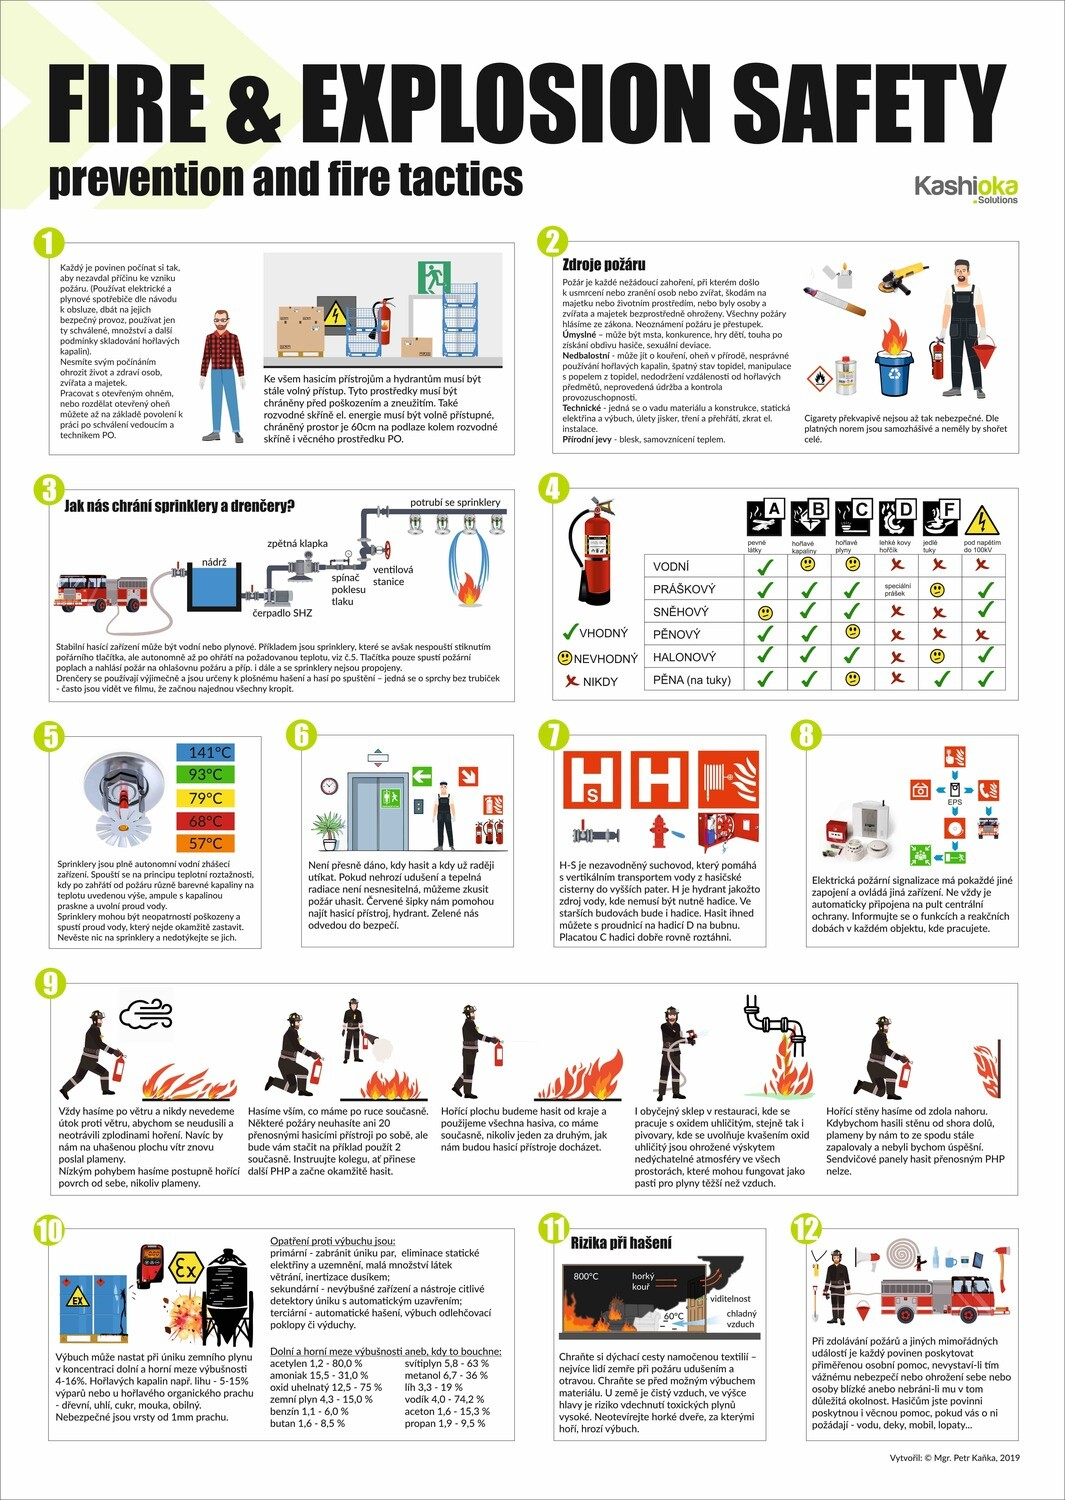 Fire & explosion safety